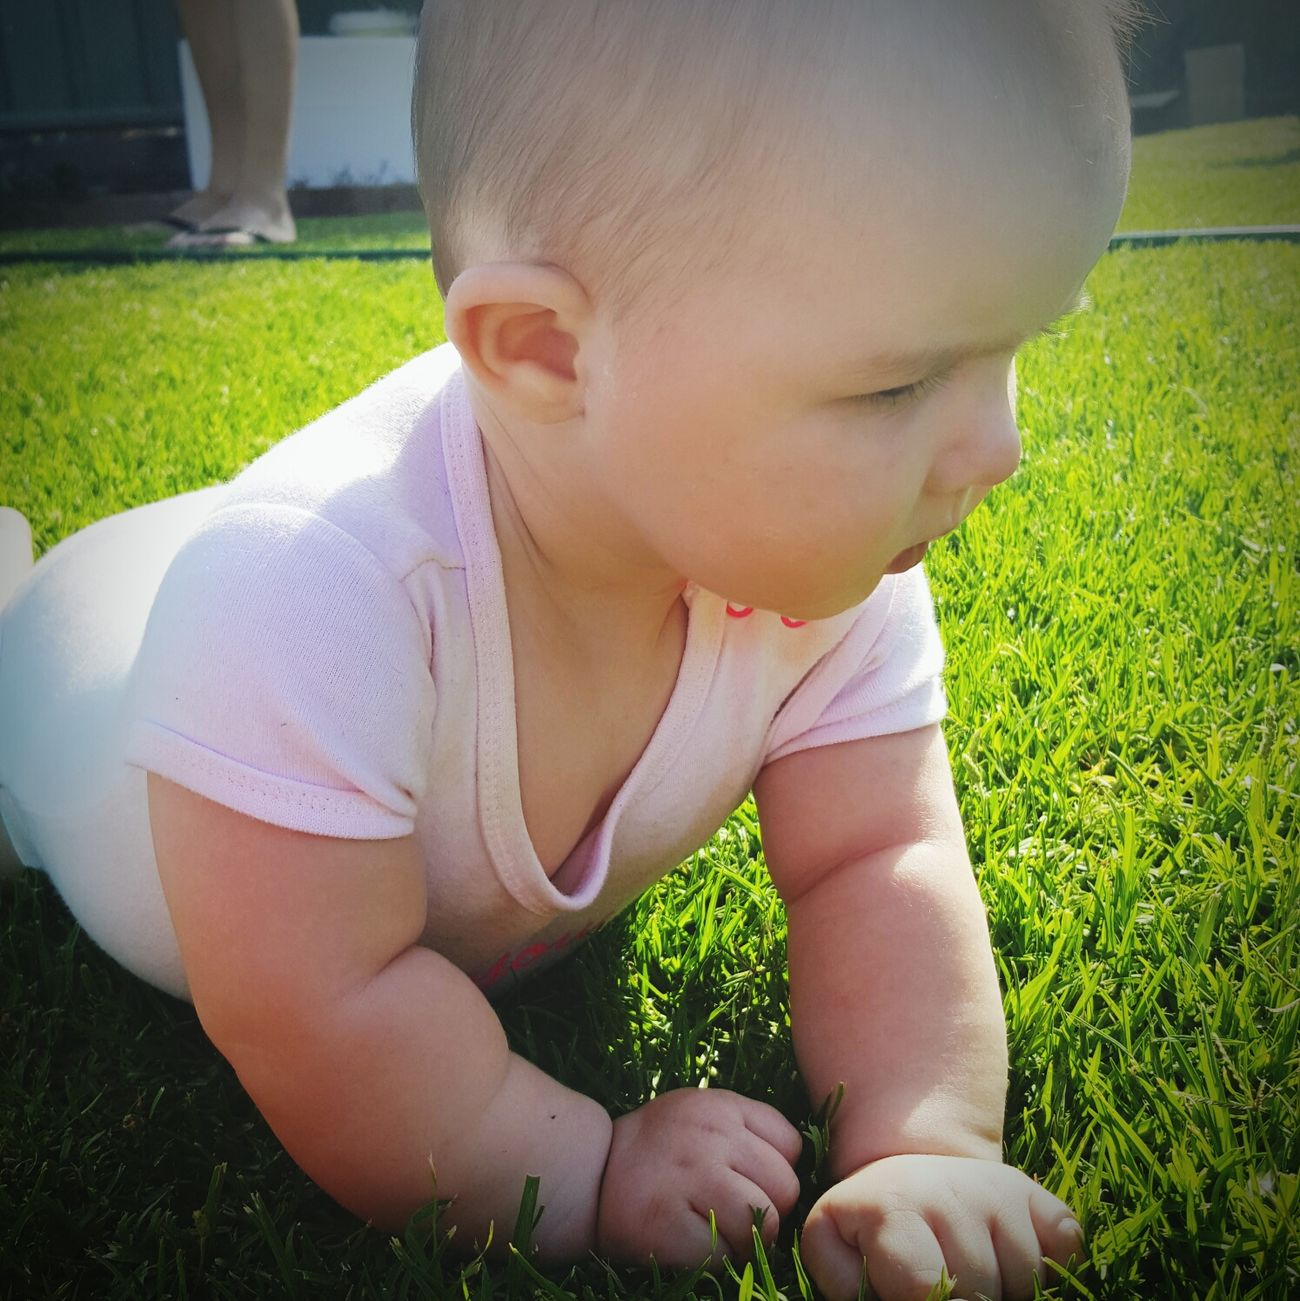 Baby Outdoors Grass BabyGirl ❤ Iloveyou Beautiful ♥ Nature_perfection